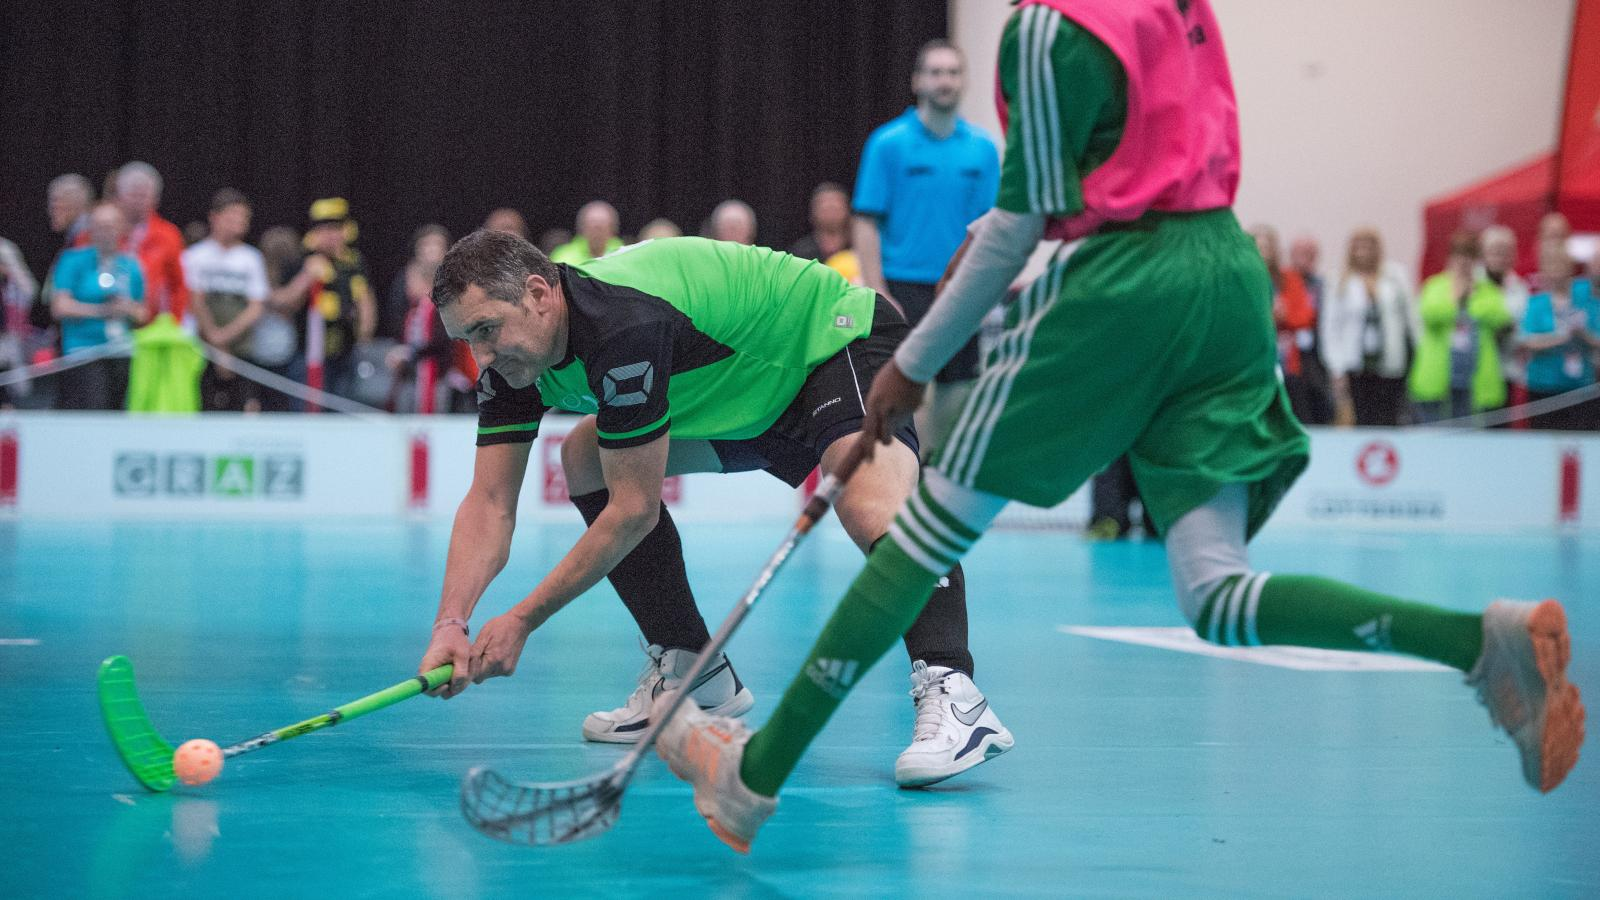 Floorball player striking ball past opponent with audience in background